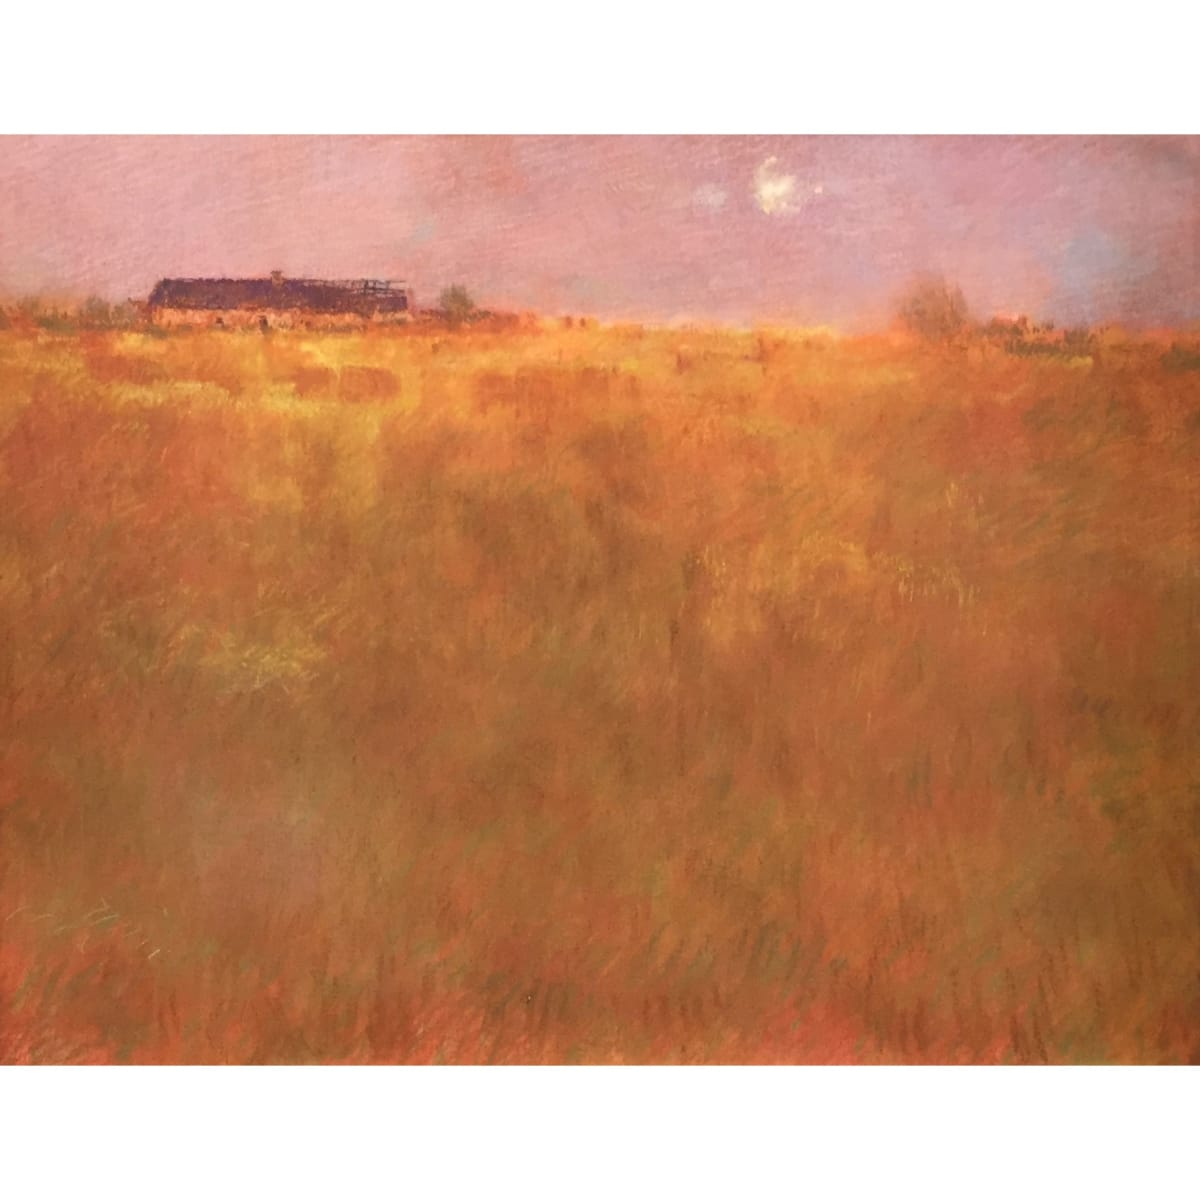 John Halliday Harvest Moon, Penicuik, c.1997 signed pastel on canvas 24 x 30 inches